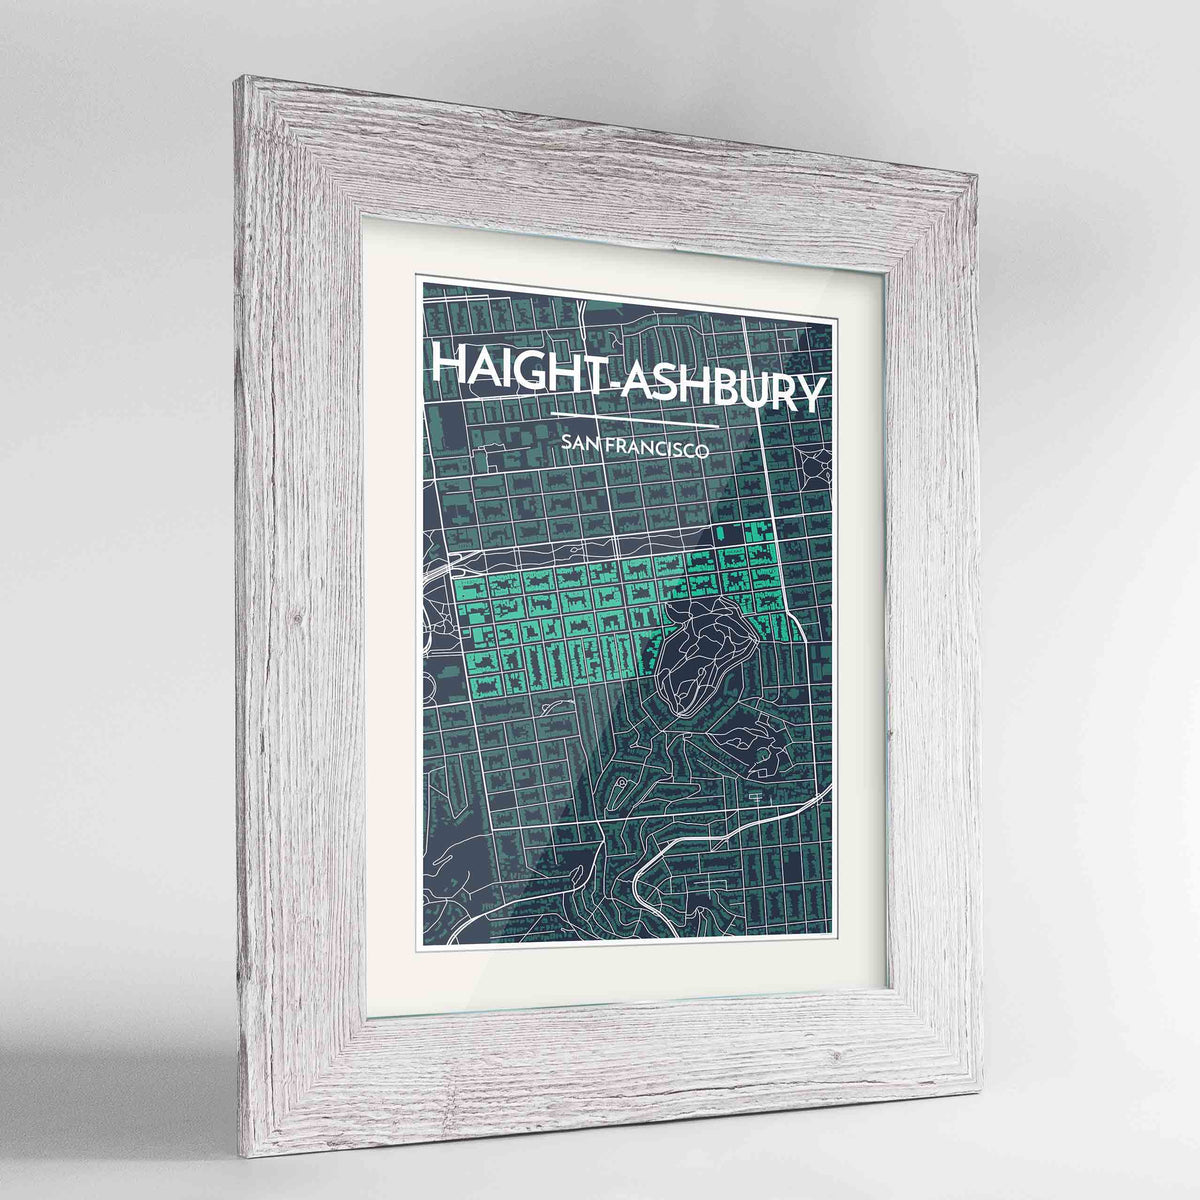 "Framed Haight-Ashbury San Francisco Map Art Print 24x36"" Western White frame Point Two Design Group"